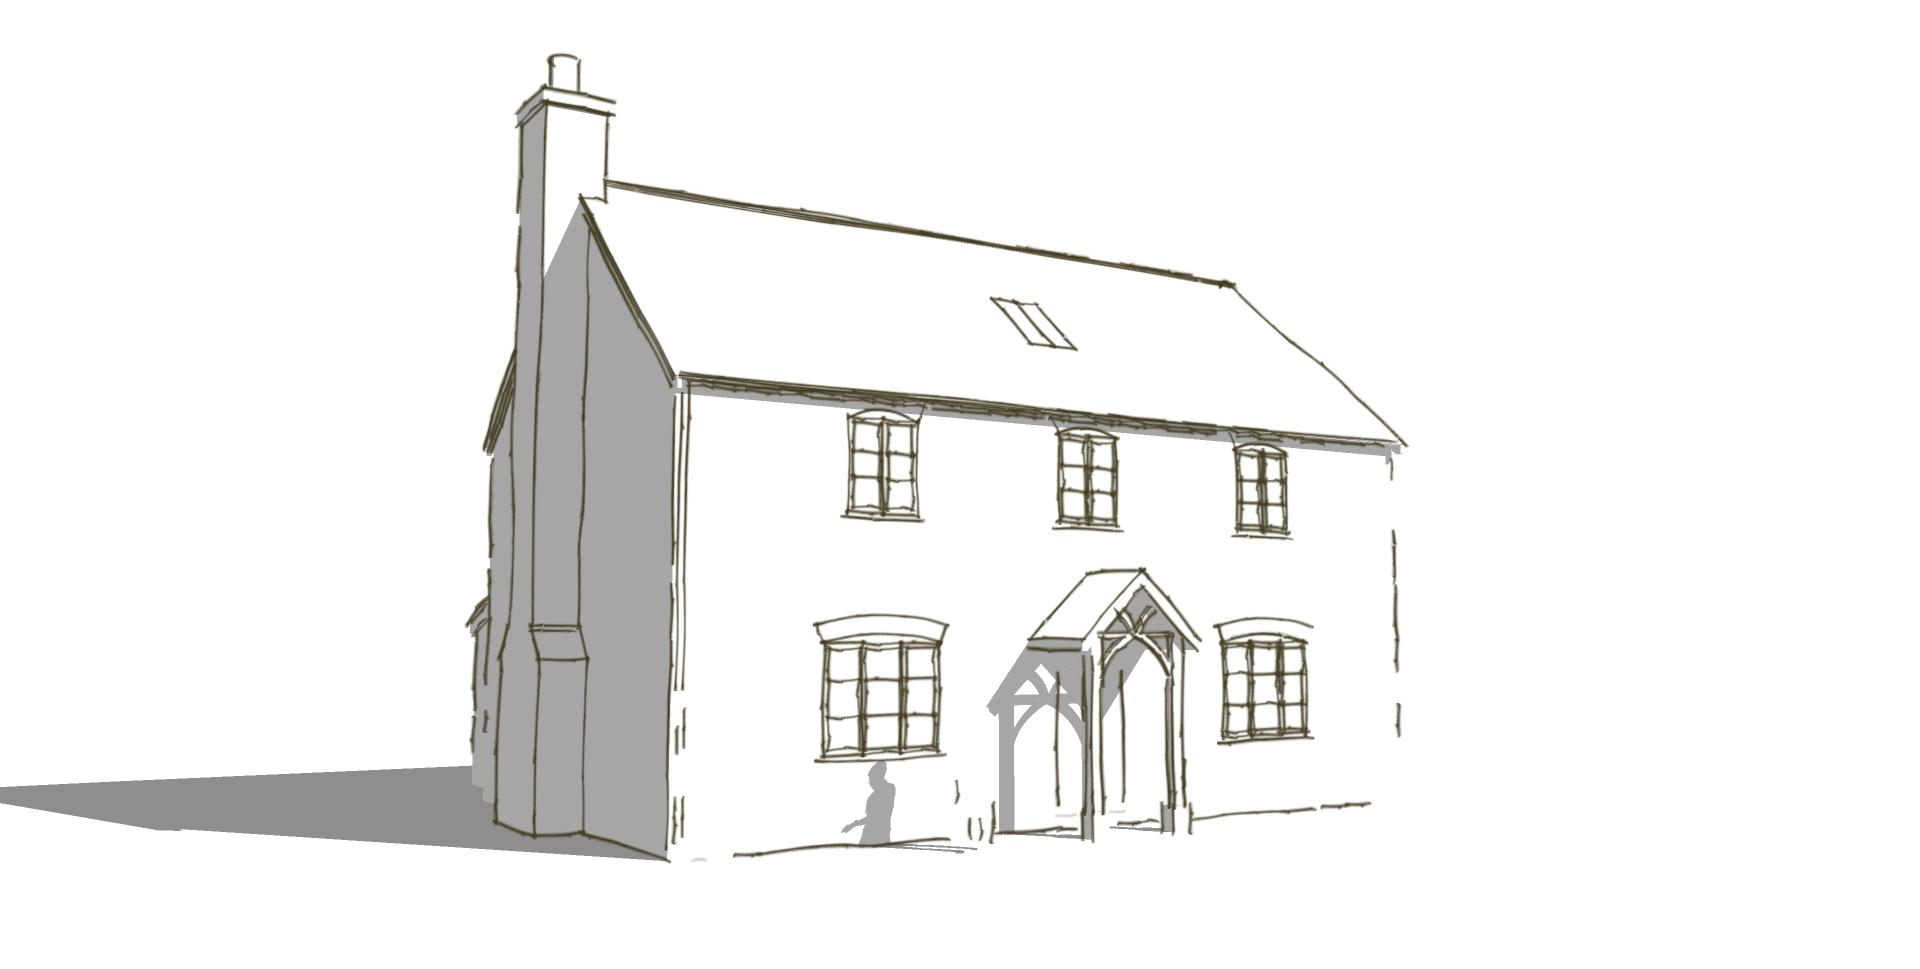 A new house that successfully achieved planning permission in a conservation area.